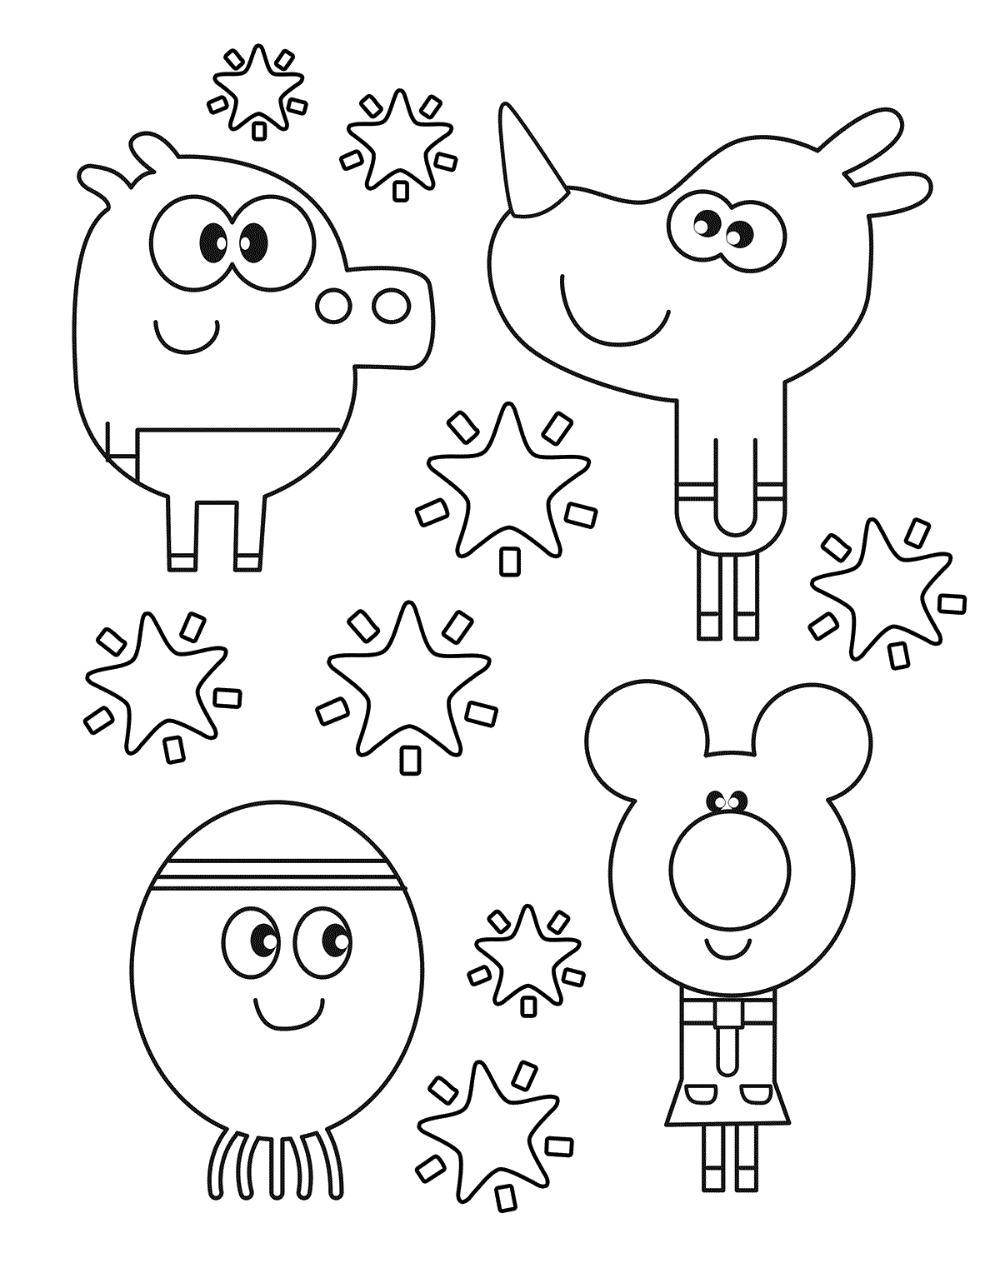 Hey Duggee Coloring Pages Getcoloringpages Com Coloring Pages Kids Coloring Books Printable Coloring